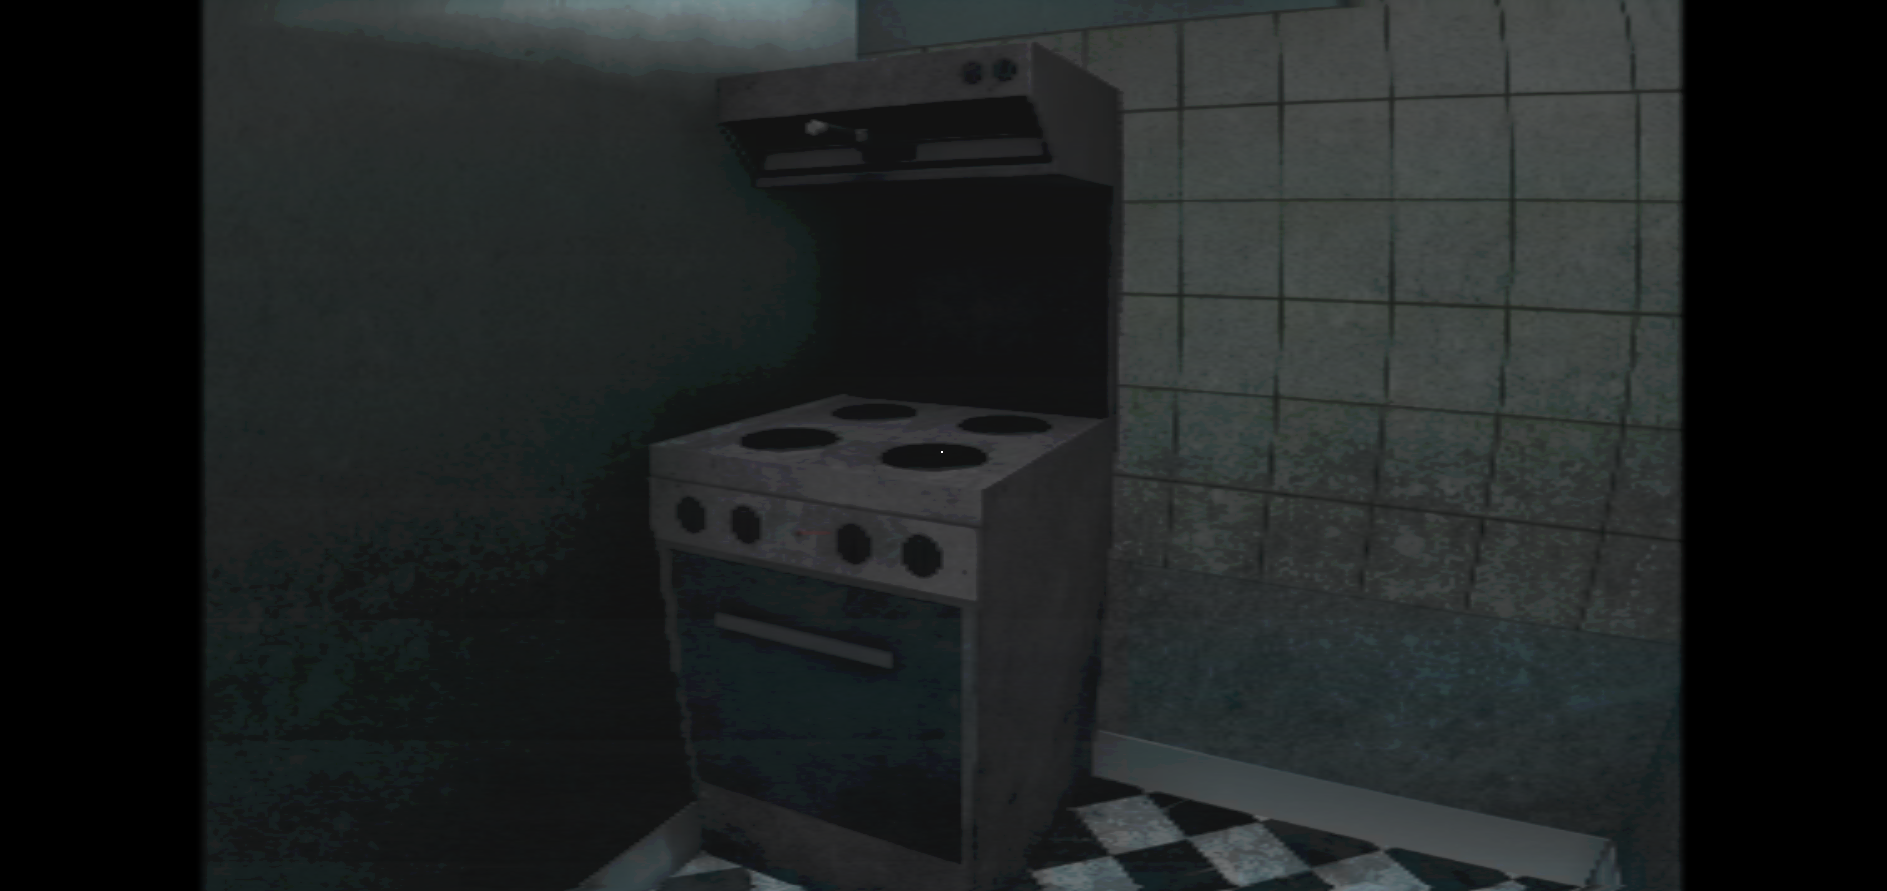 Kitchen - Oven